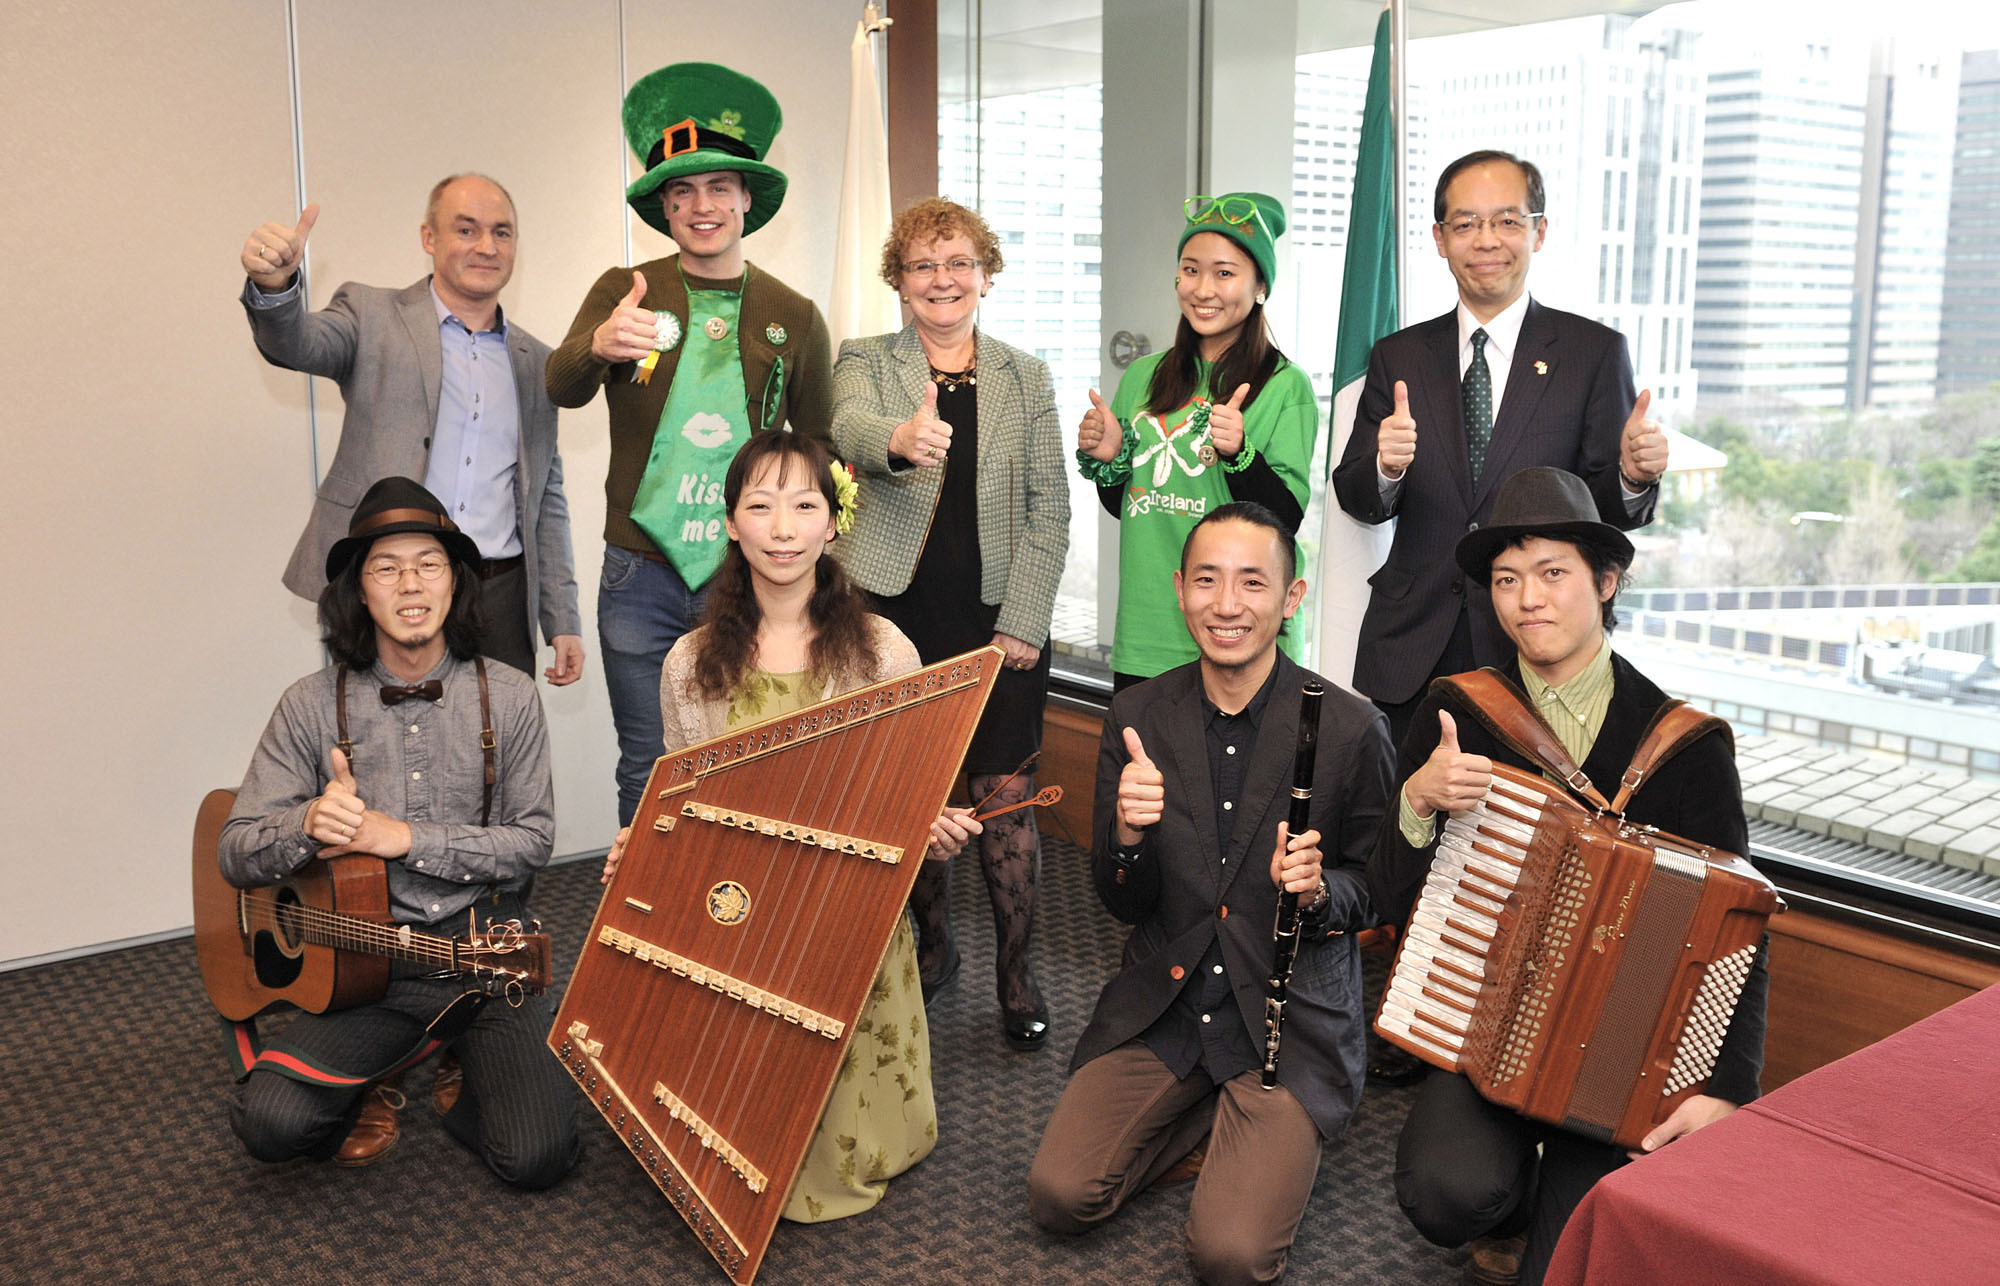 Irish Ambassador Anne Barrington (back row, center) poses with Declan Somers (back, left), chairperson of the Irish Network Japan Tokyo; Yoshihiro Tsuchiya (back, right), vice president of the Ireland Japan Chamber of Commerce and chairperson of the I Love Ireland Festival 2016 Committee;   members of the Irish music group O'Jizo; and hammered dulcimer player MiMi (front row, second from left), at a press conference announcing St. Patrick's Day events at the Japan National Press Club on Feb. 24. | YOSHIAKI MIURA